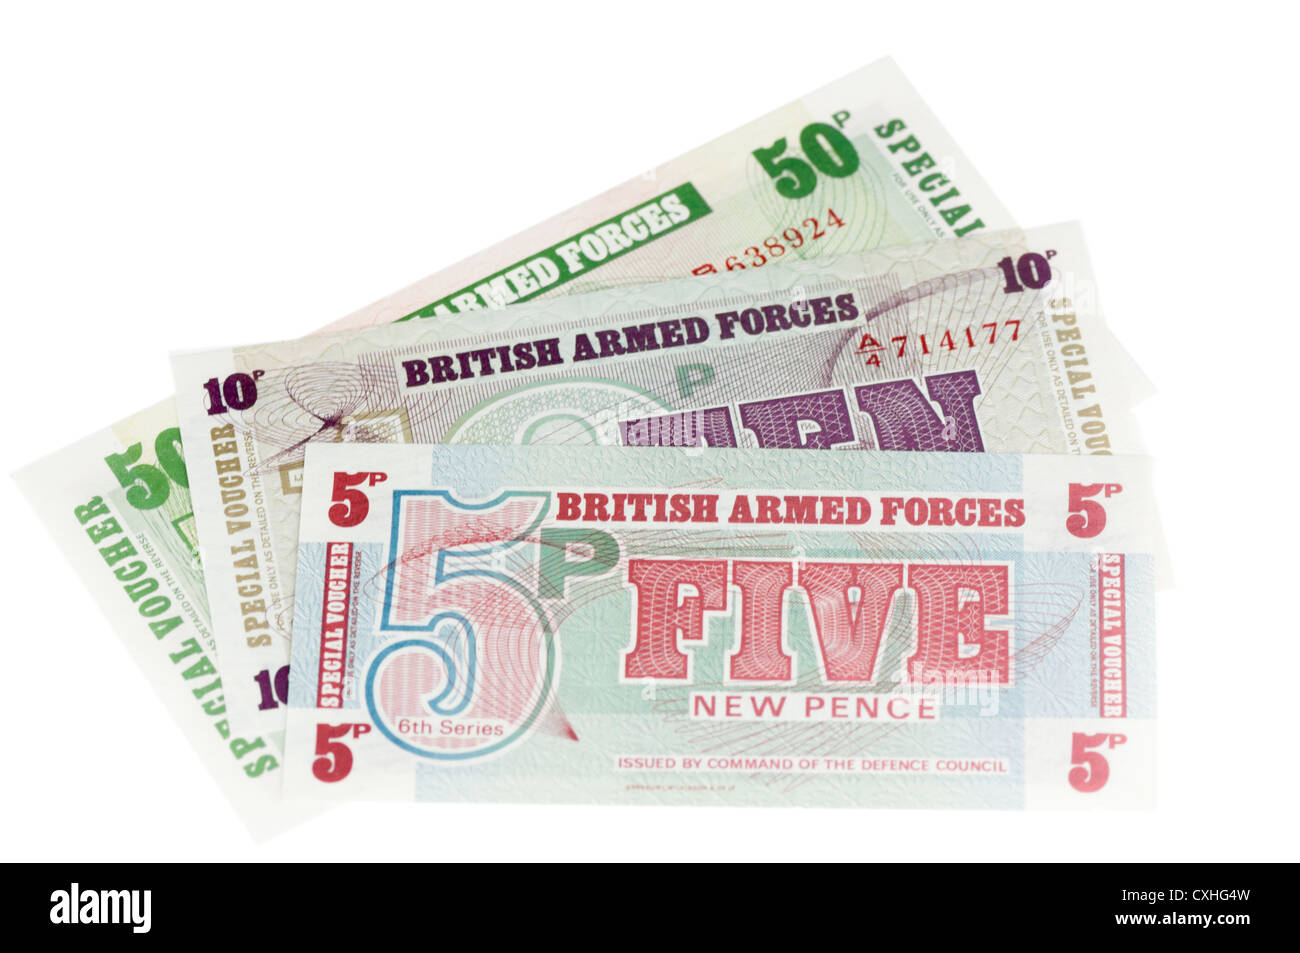 British Armed Forces currency vouchers - Stock Image